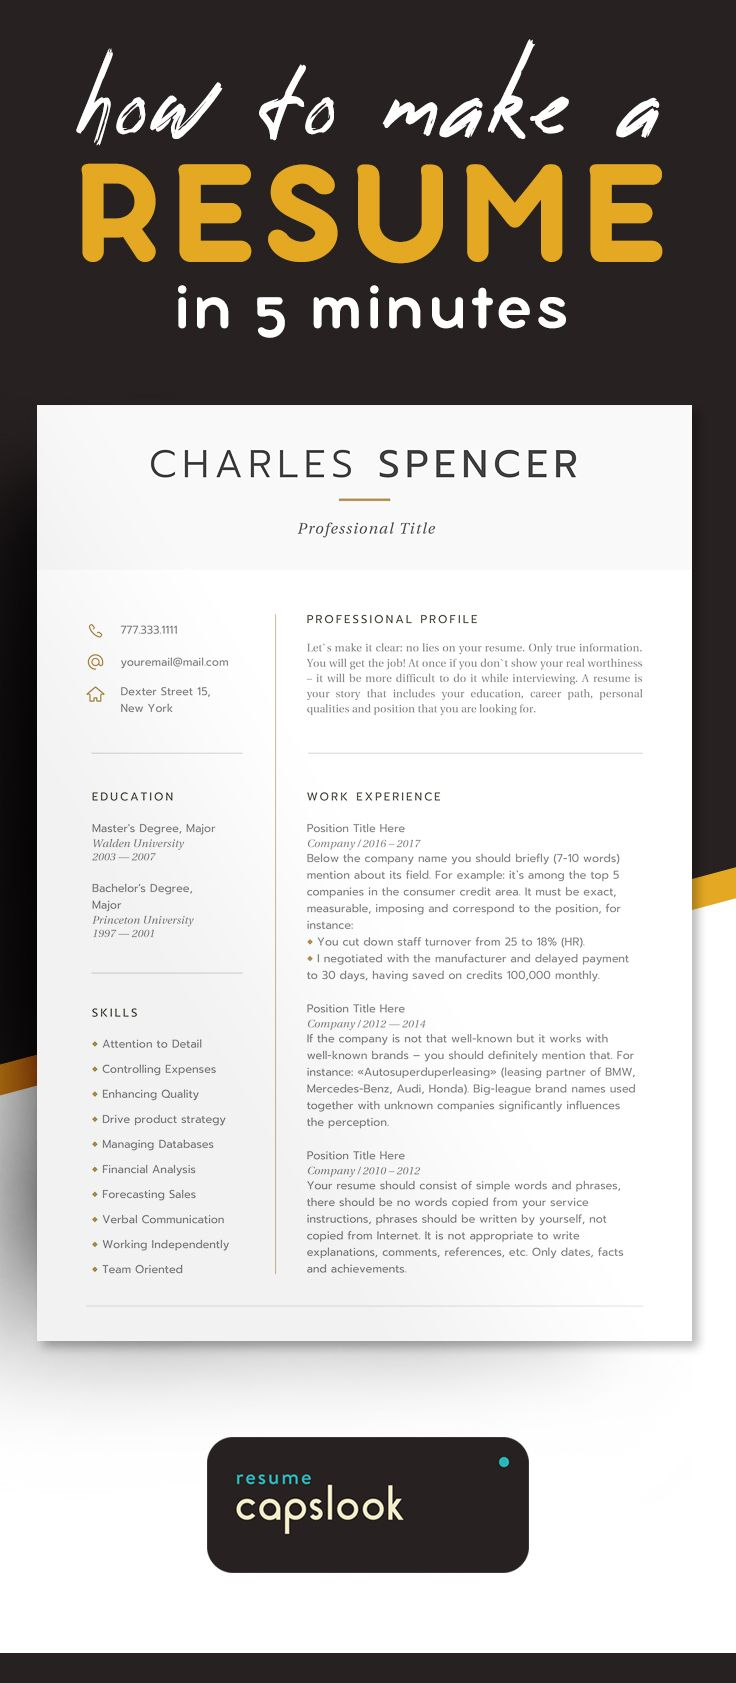 11 Student Resume Samples No Experience | Resume | Pinterest | Student  Resume, Students And Resume Format.